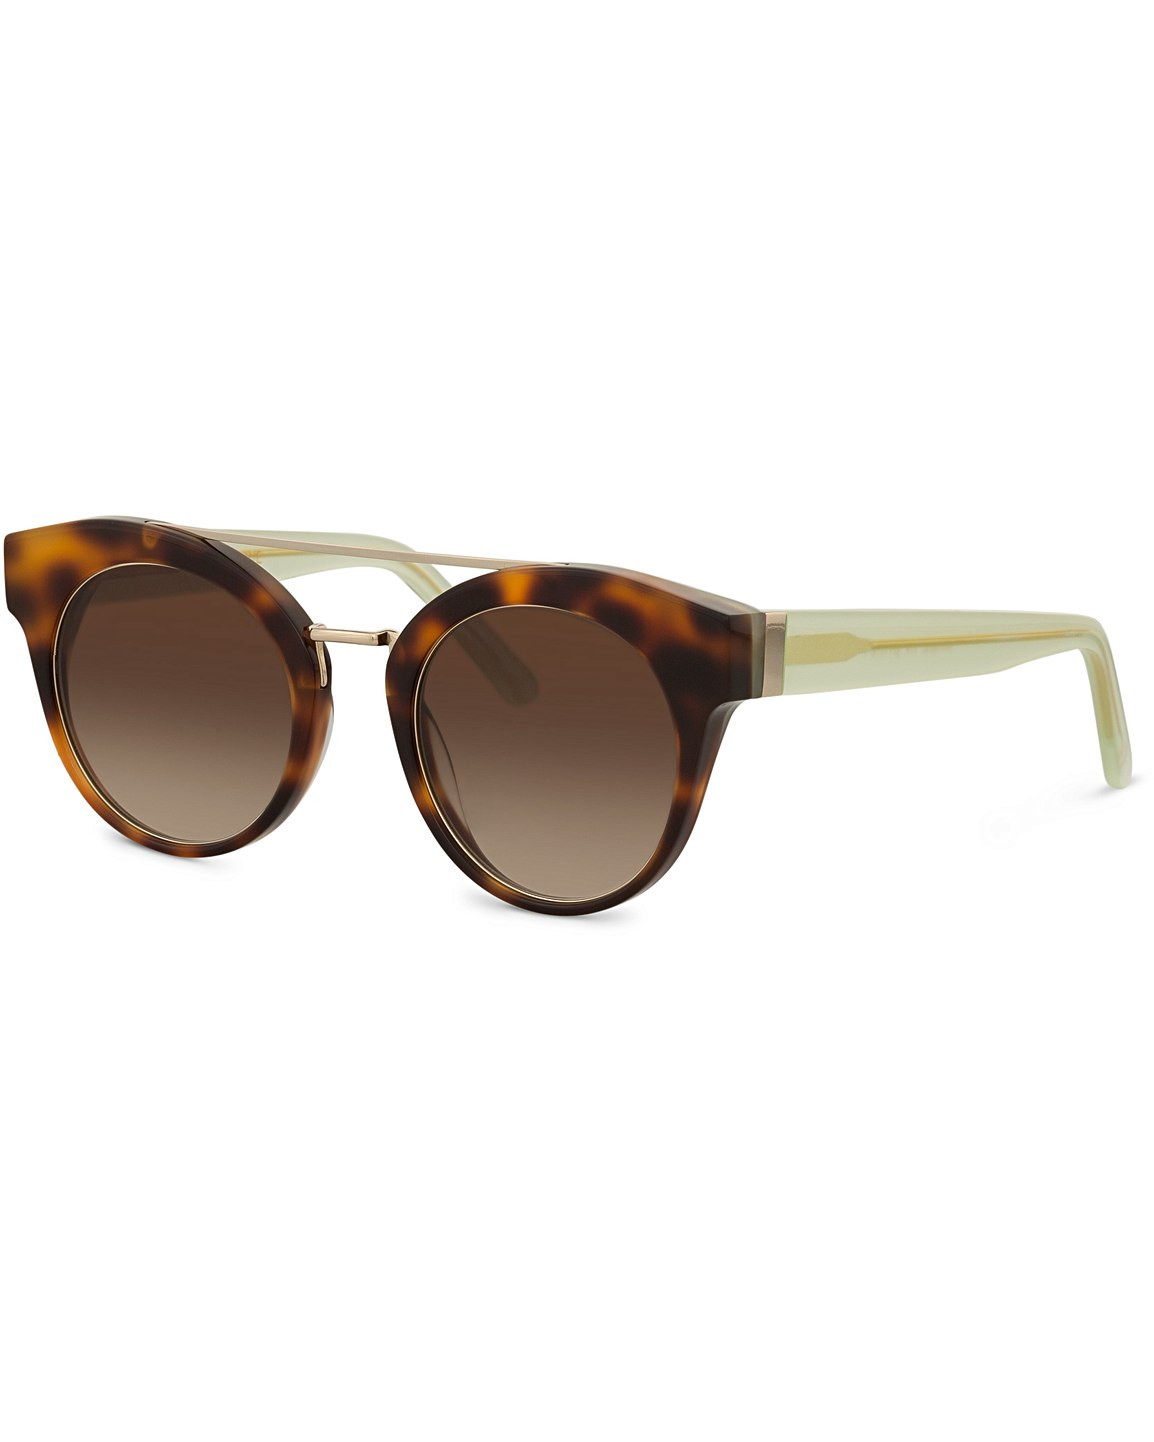 Tortoise Shell Glass Vase Of Sale Shop All Sale Oliver Bonas for Alila Brow Bar tortoiseshell Sunglasses